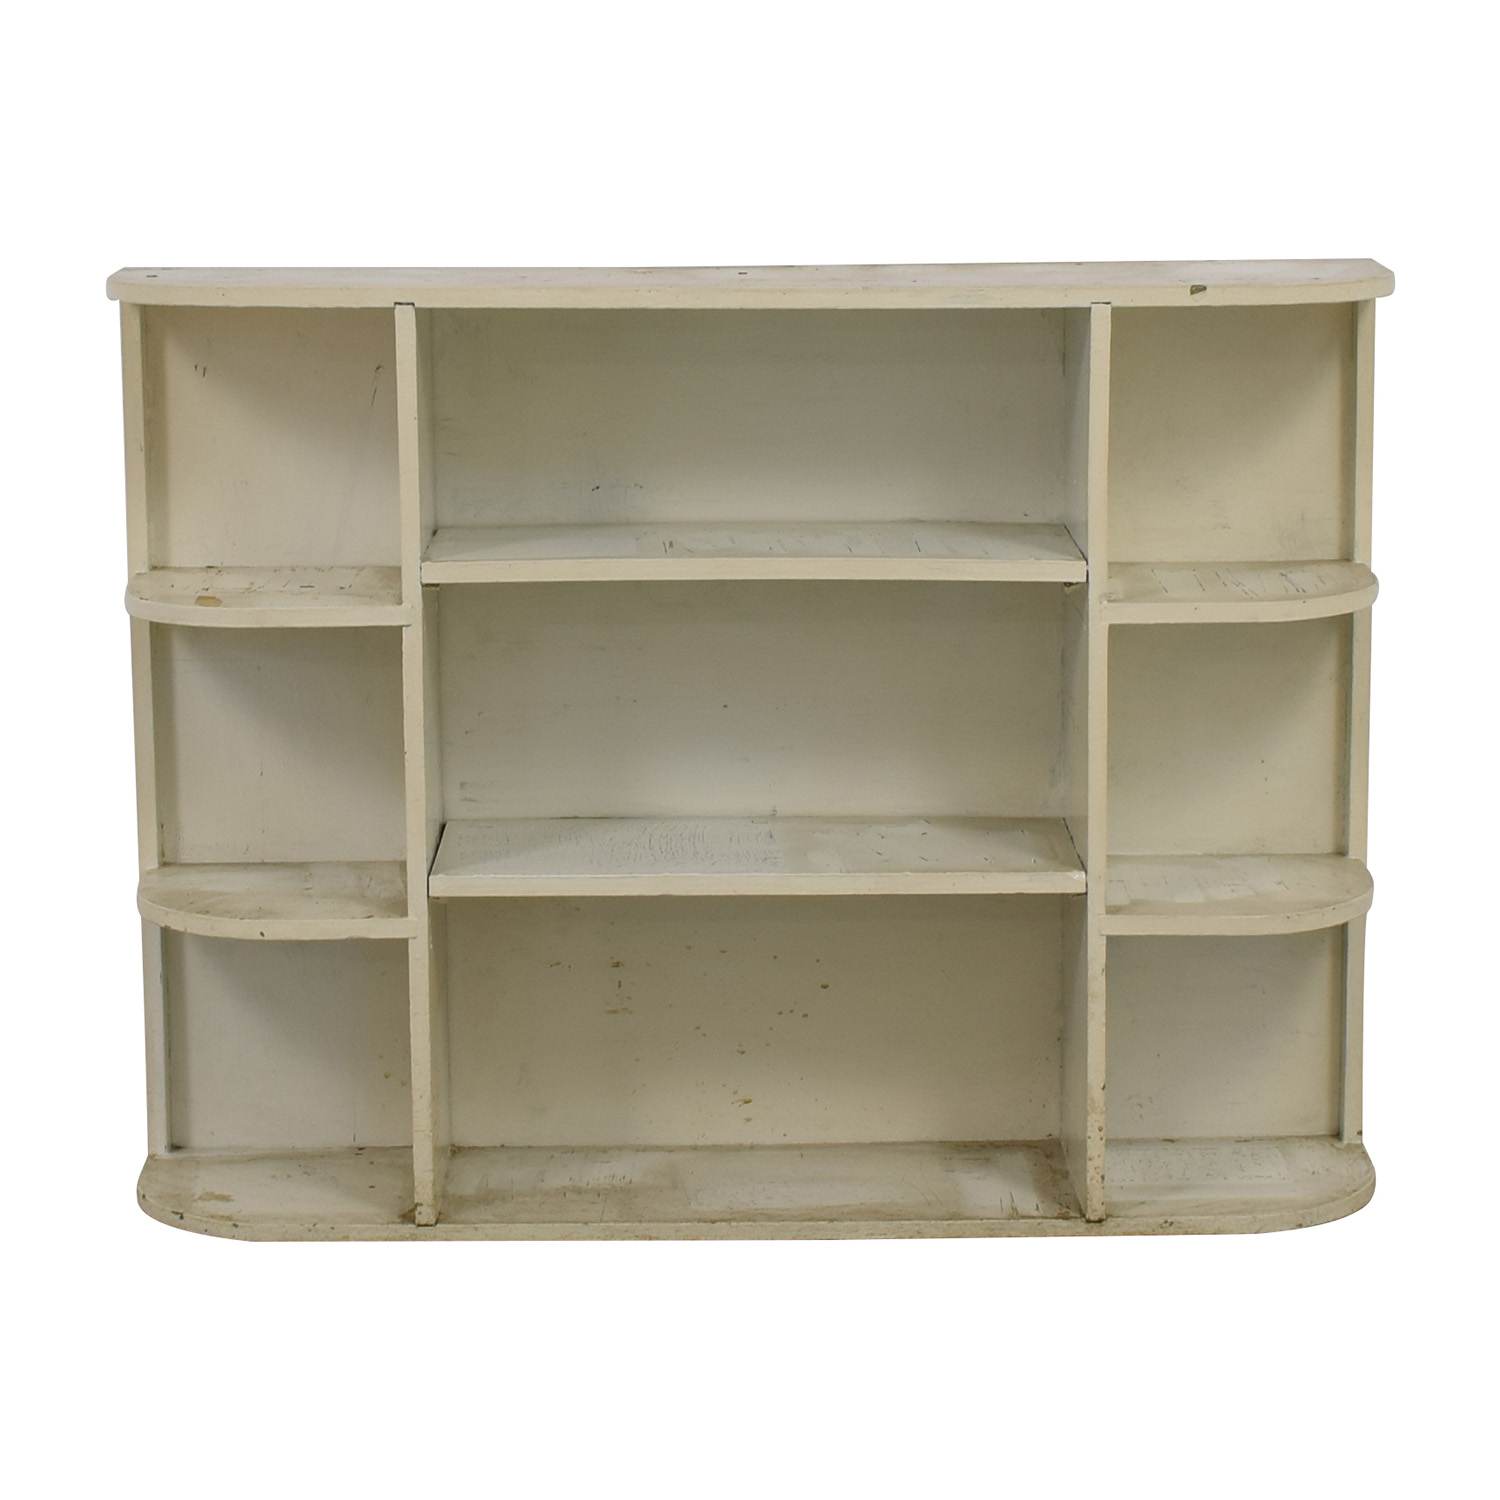 buy Rustic White Painted Book Shelf Bookcases & Shelving